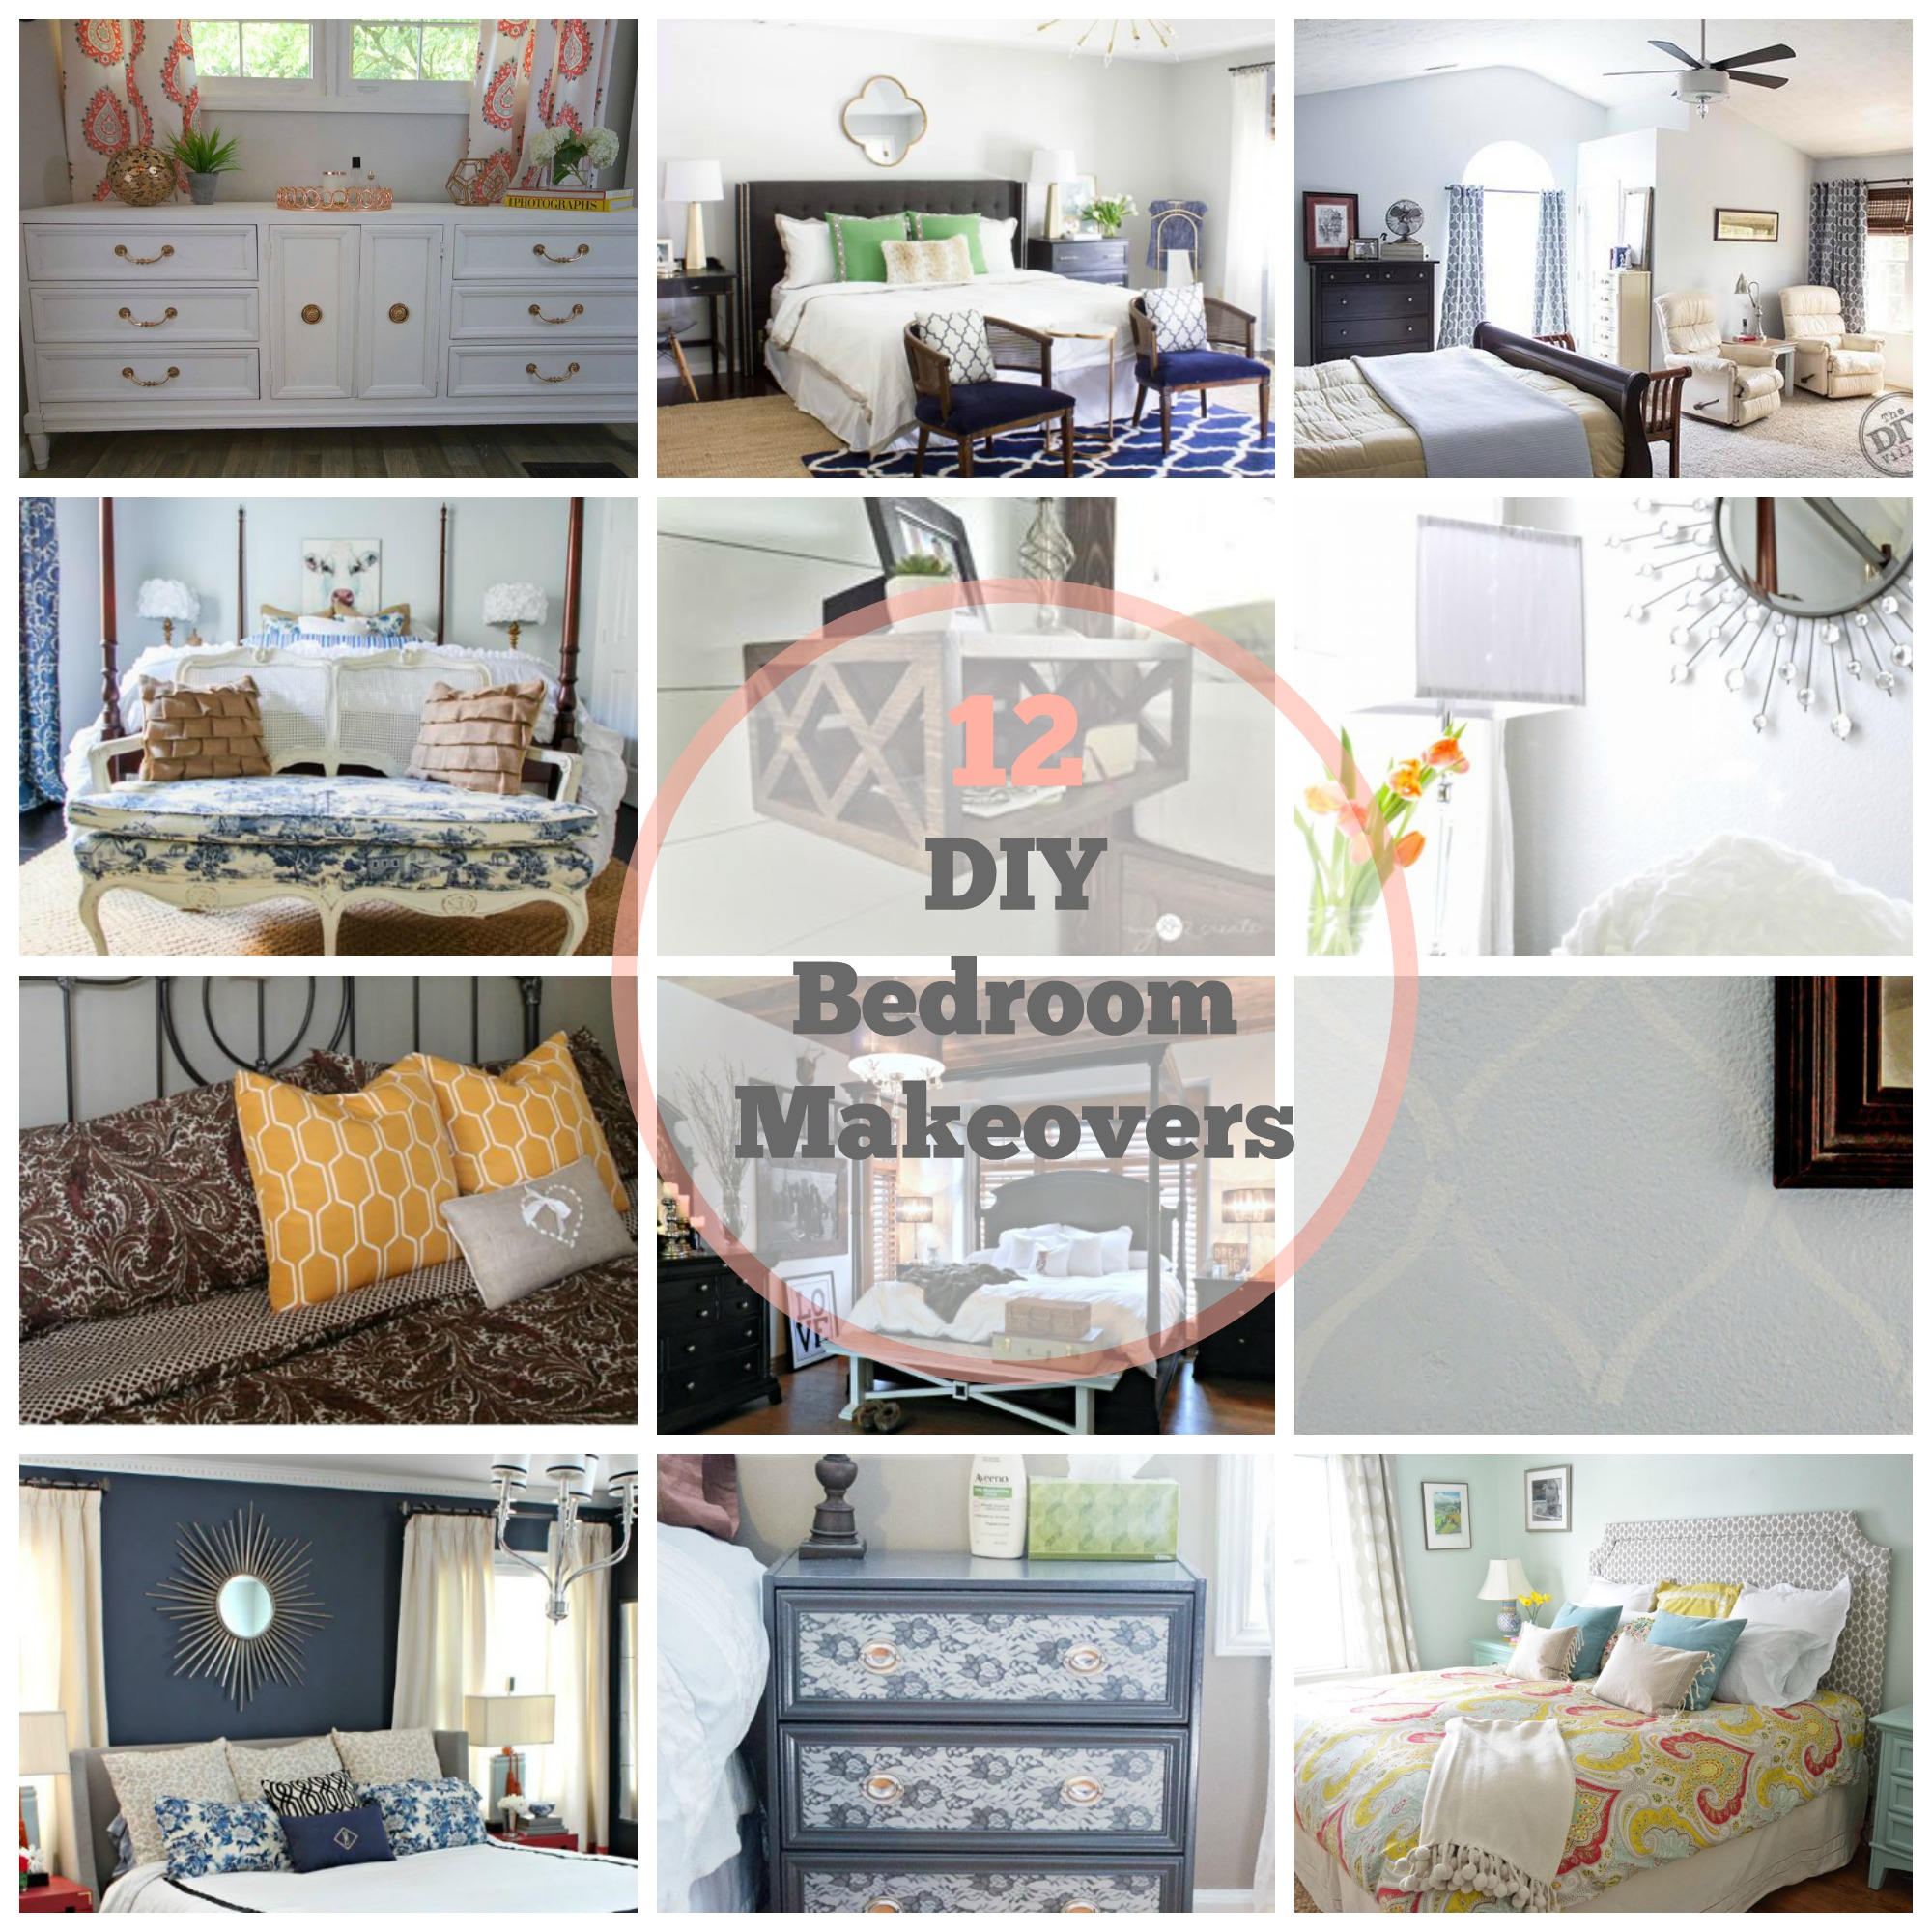 12-beautiful-diy-bedroom-makeovers